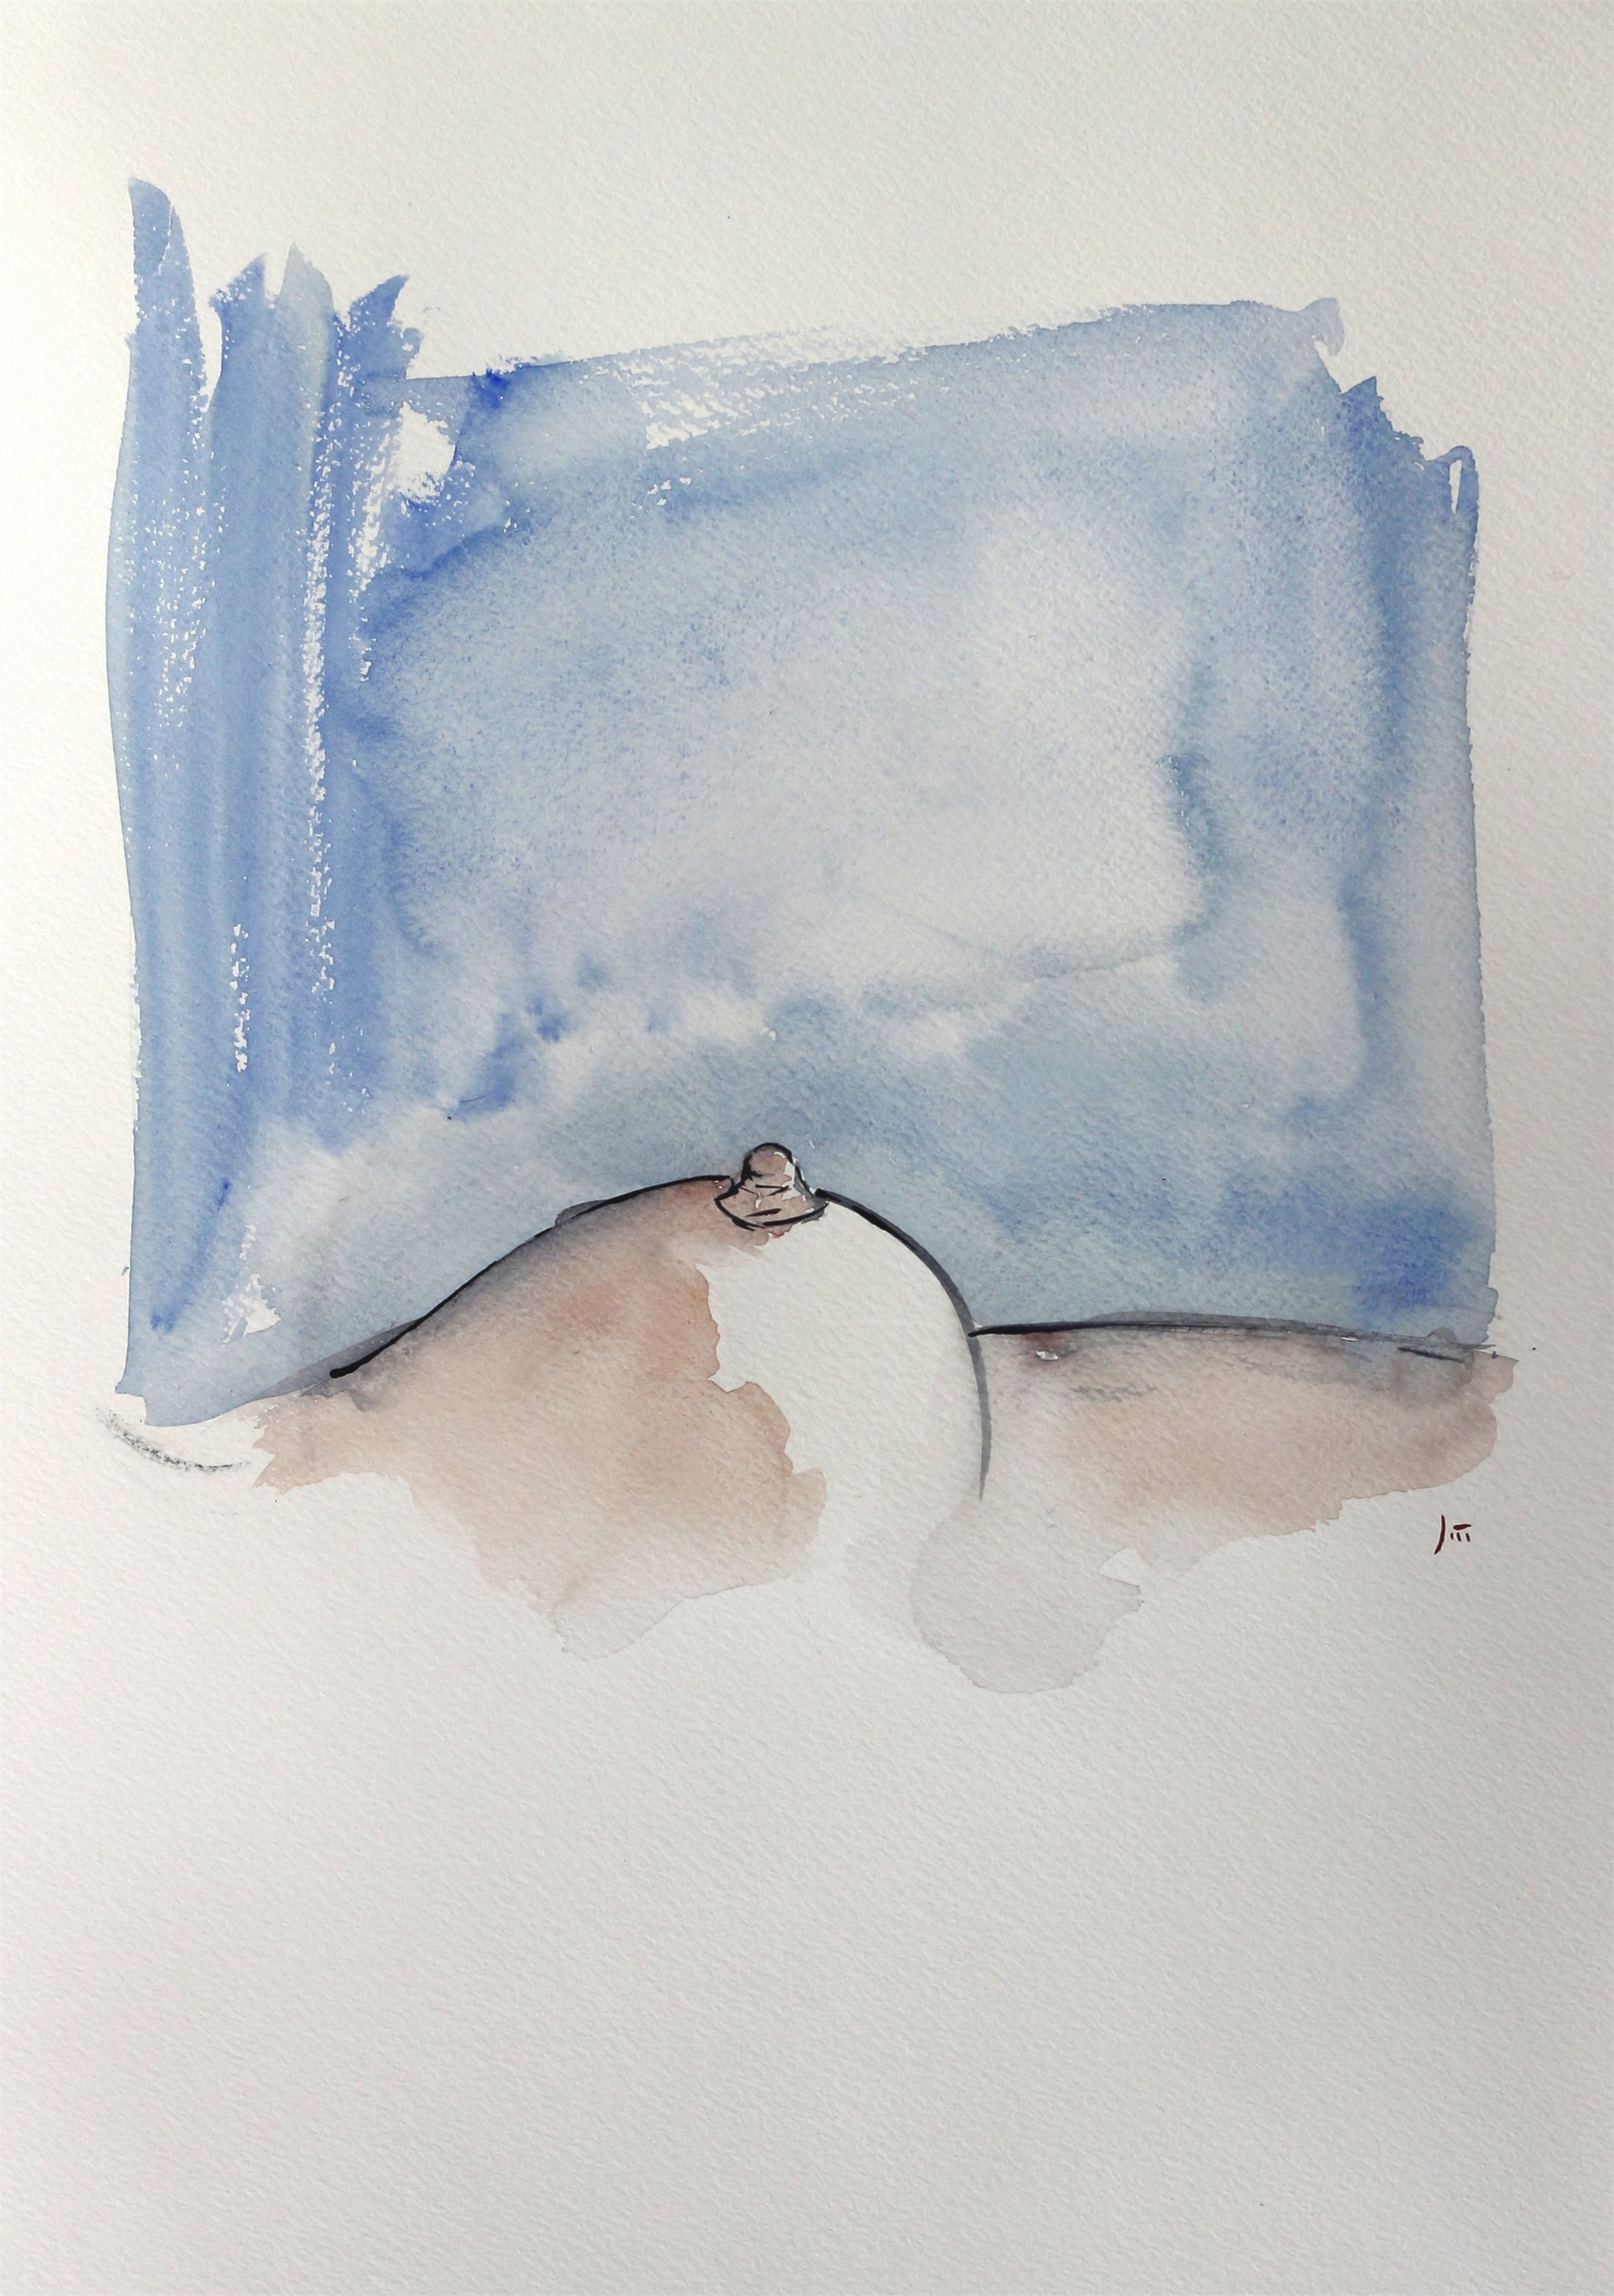 Limiar do precipício, original Body Watercolor Drawing and Illustration by João Gil Antunes